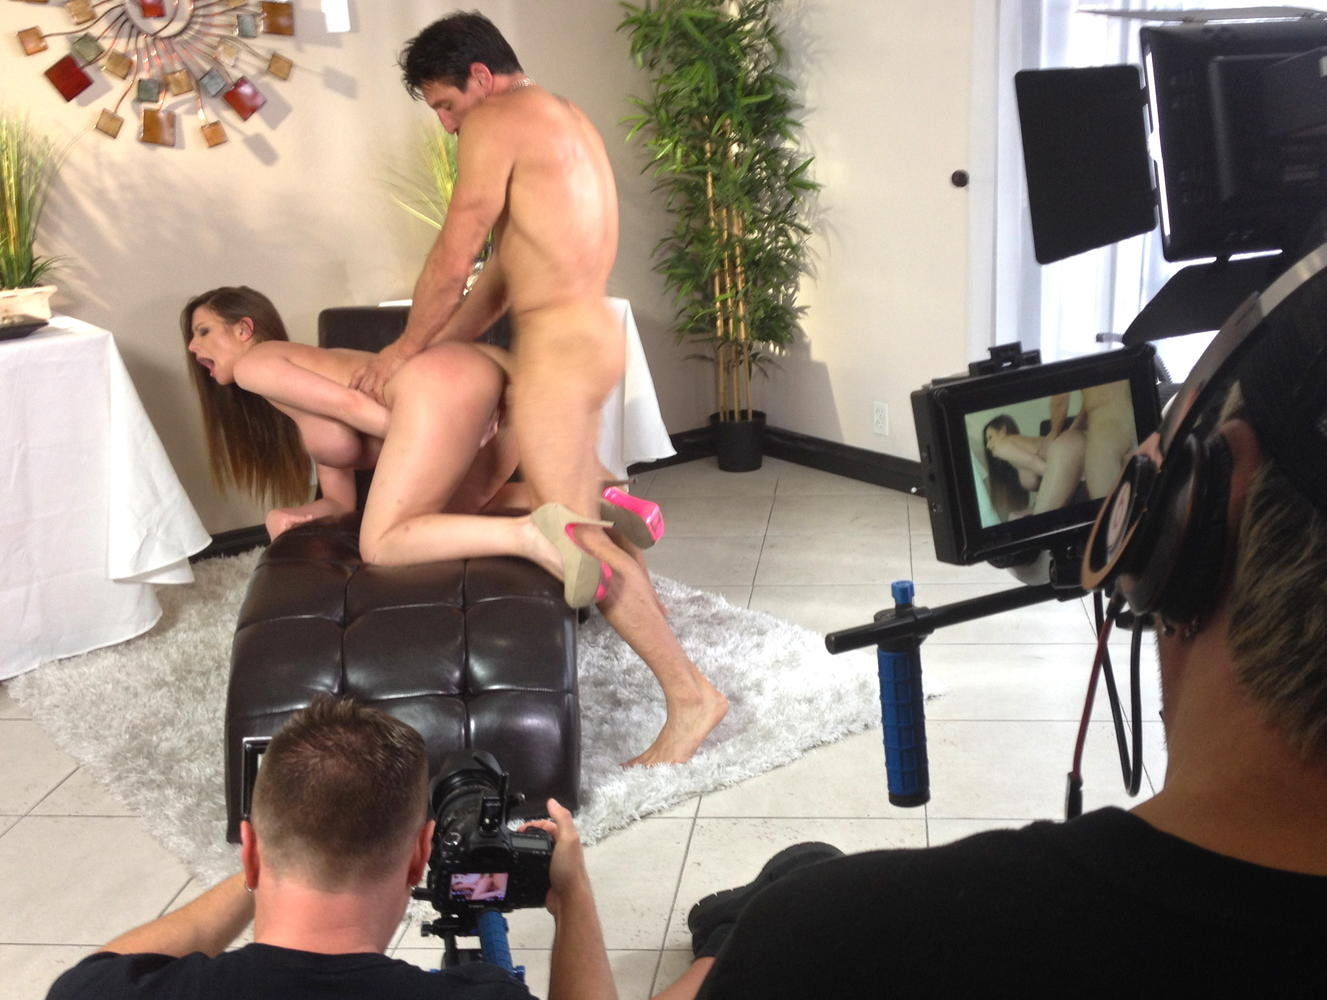 behind the scenes of a porn movie